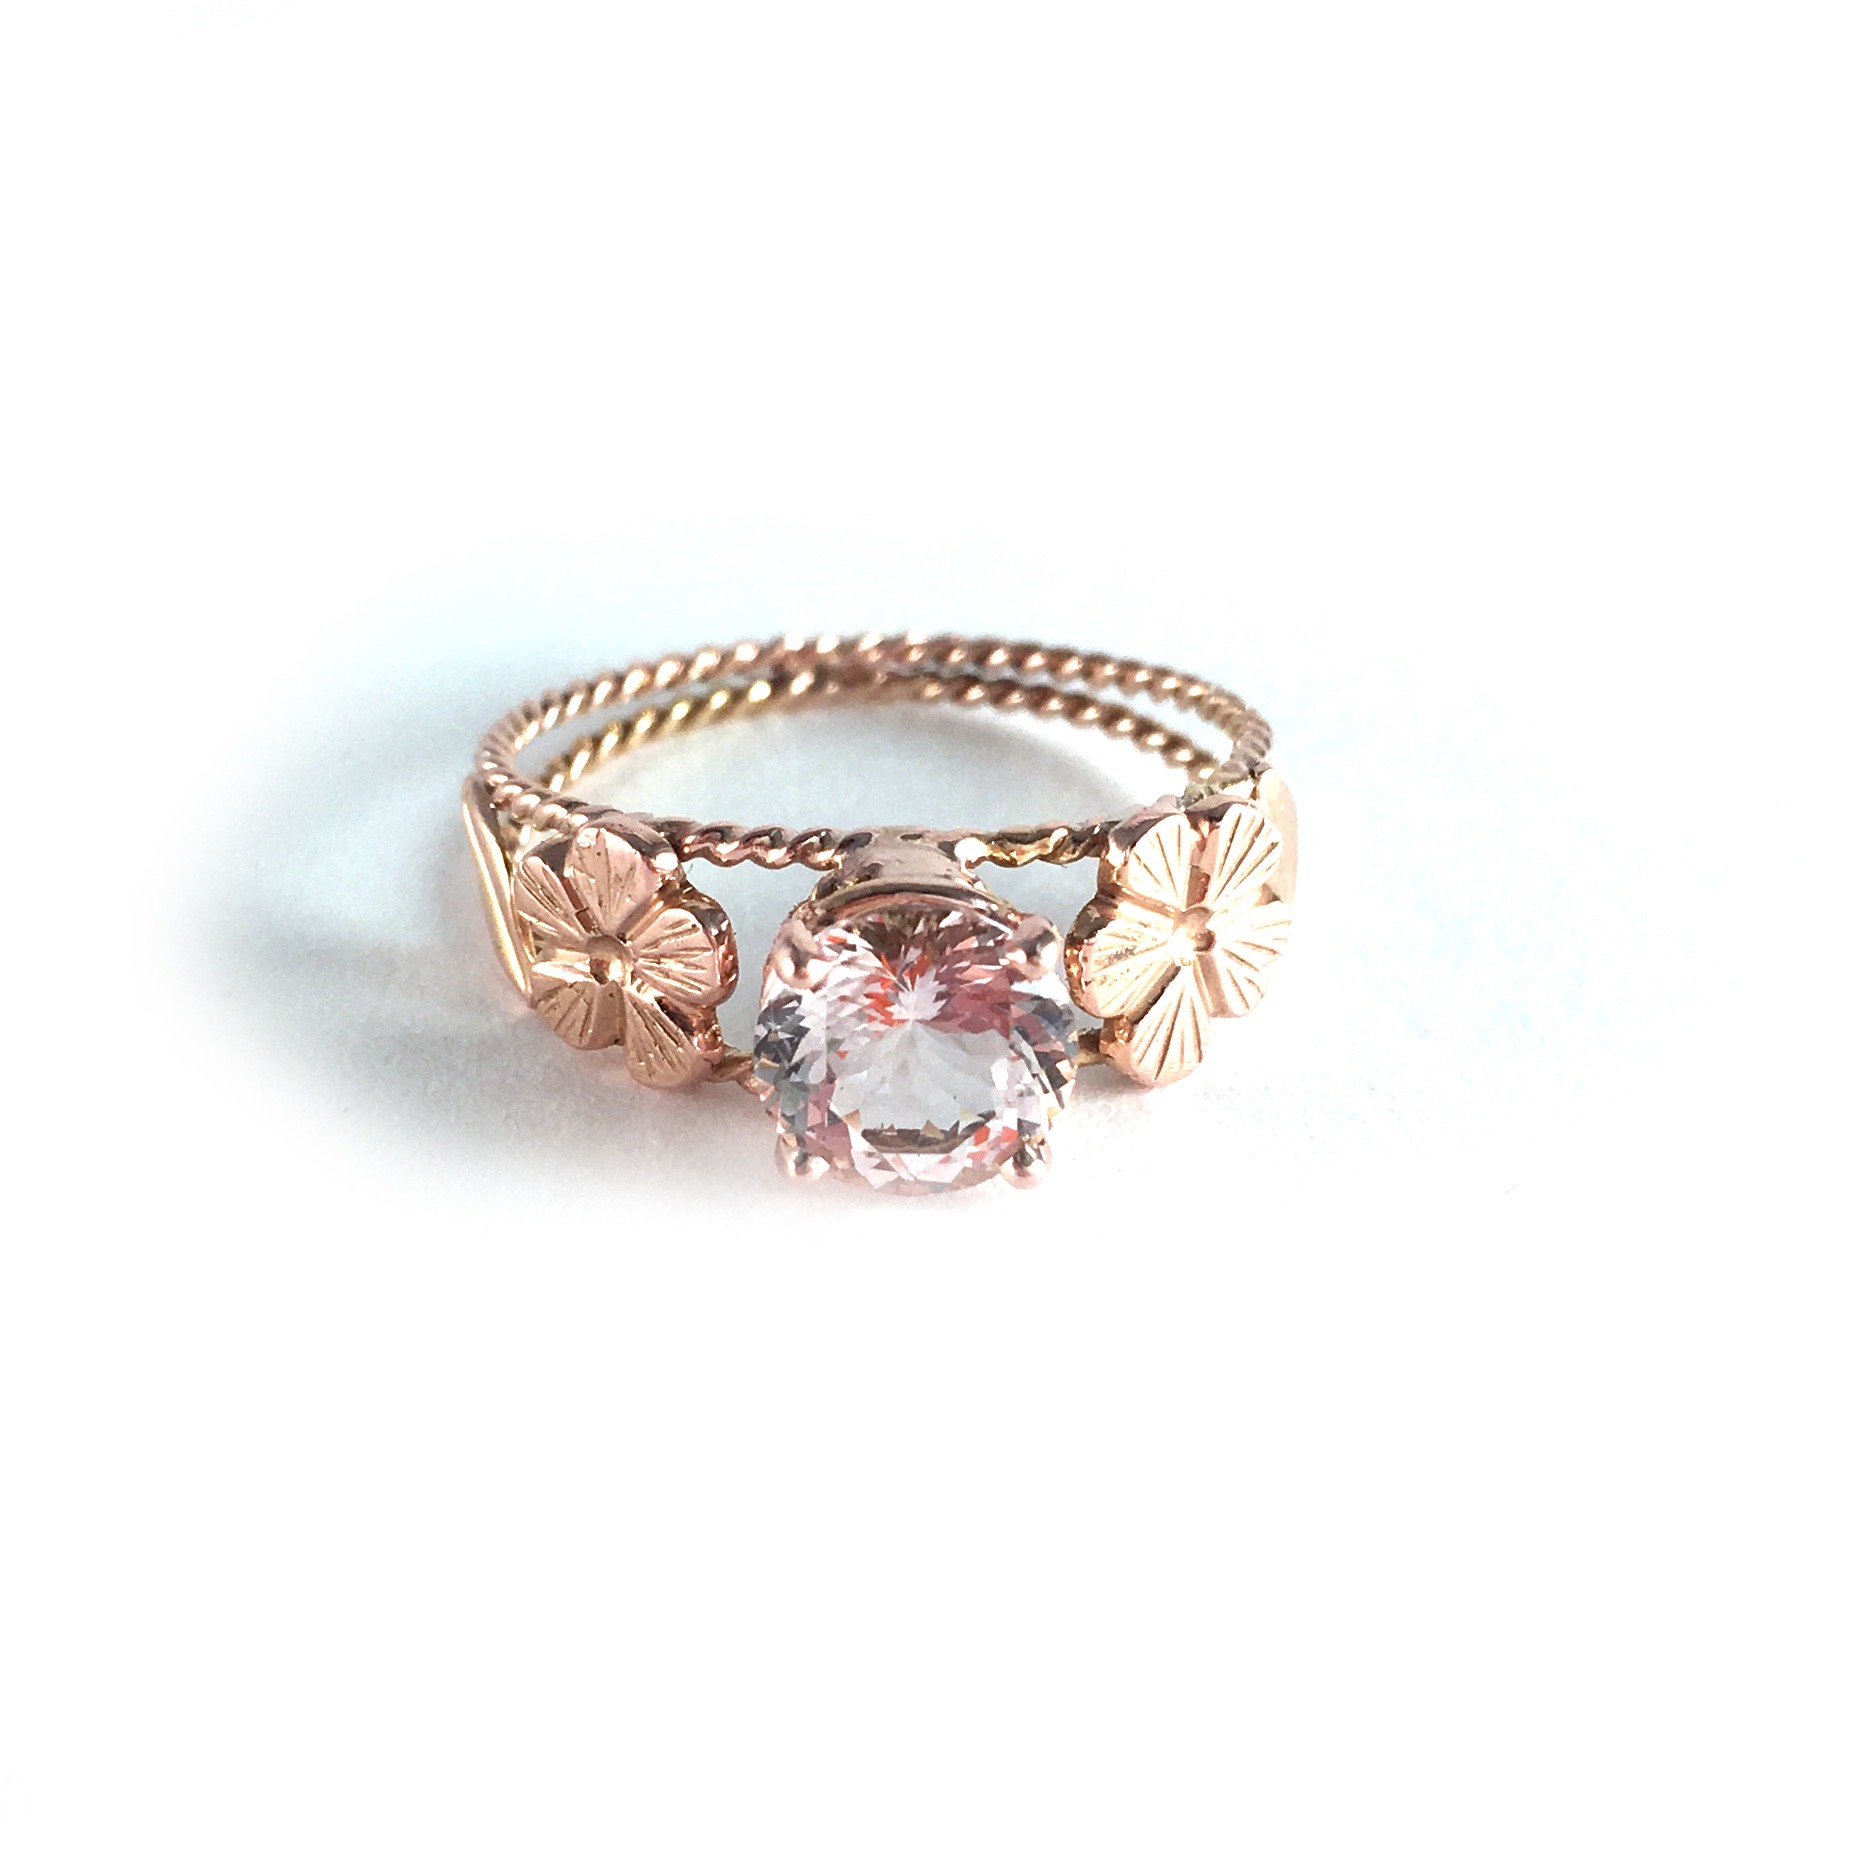 Hand crafted custom 14k rose gold ring, hand-engraved flowers, pink morganite for Adam and Sidney.